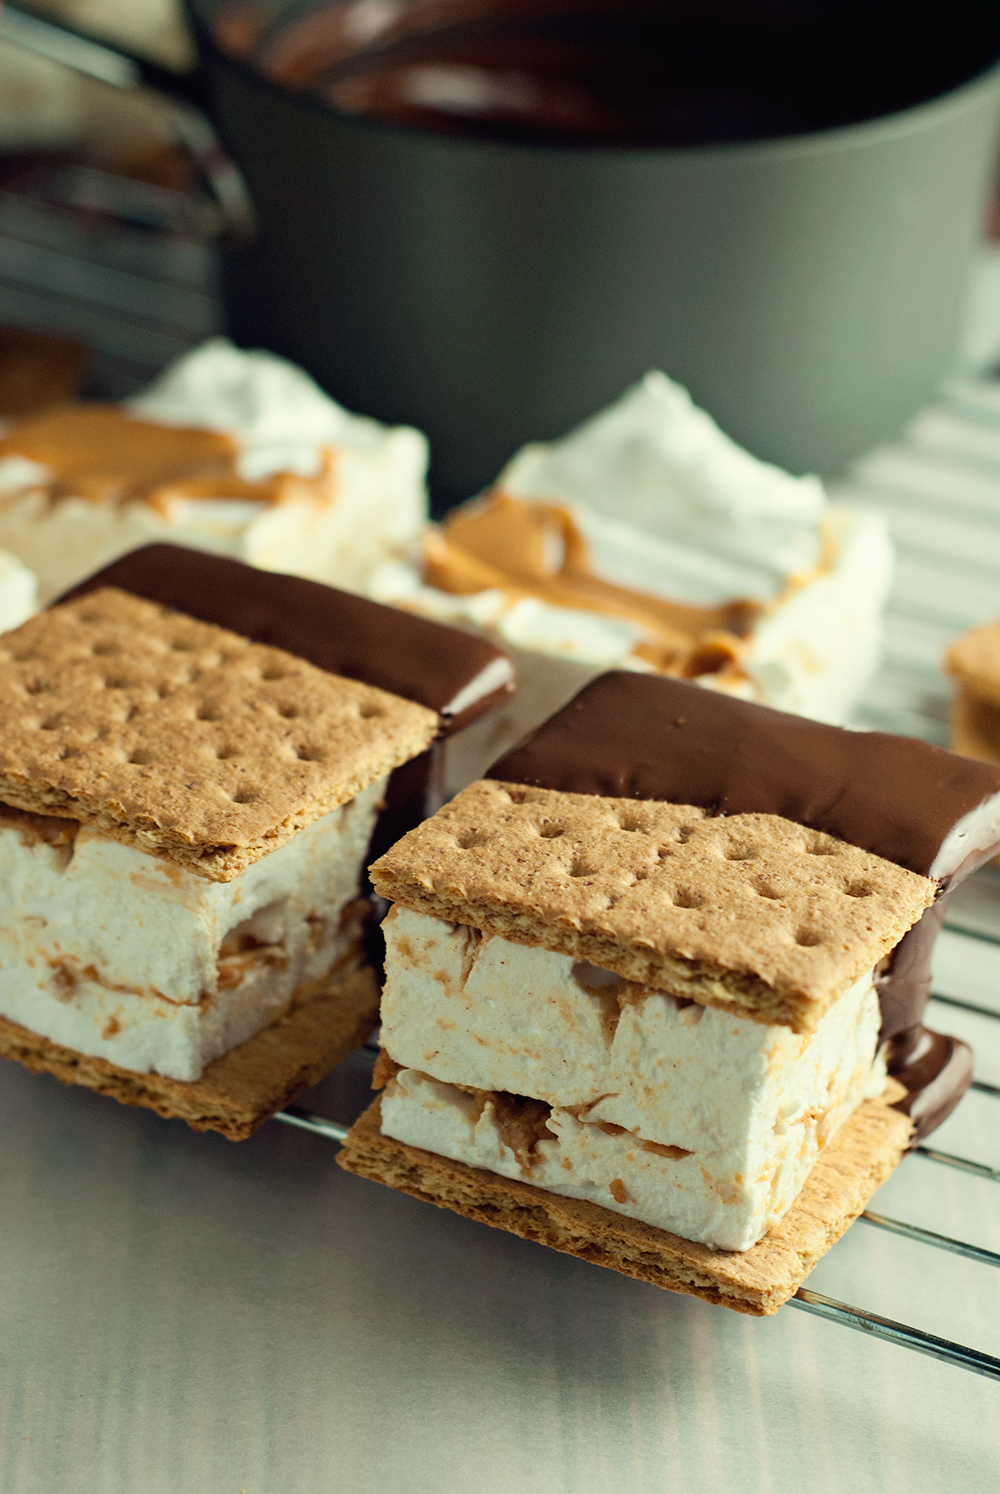 These chocolate peanut butter smores are sure to blow your mind with massive, fluffy, homemade marshmallows between crisp graham crackers, dripped in rich chocolate!